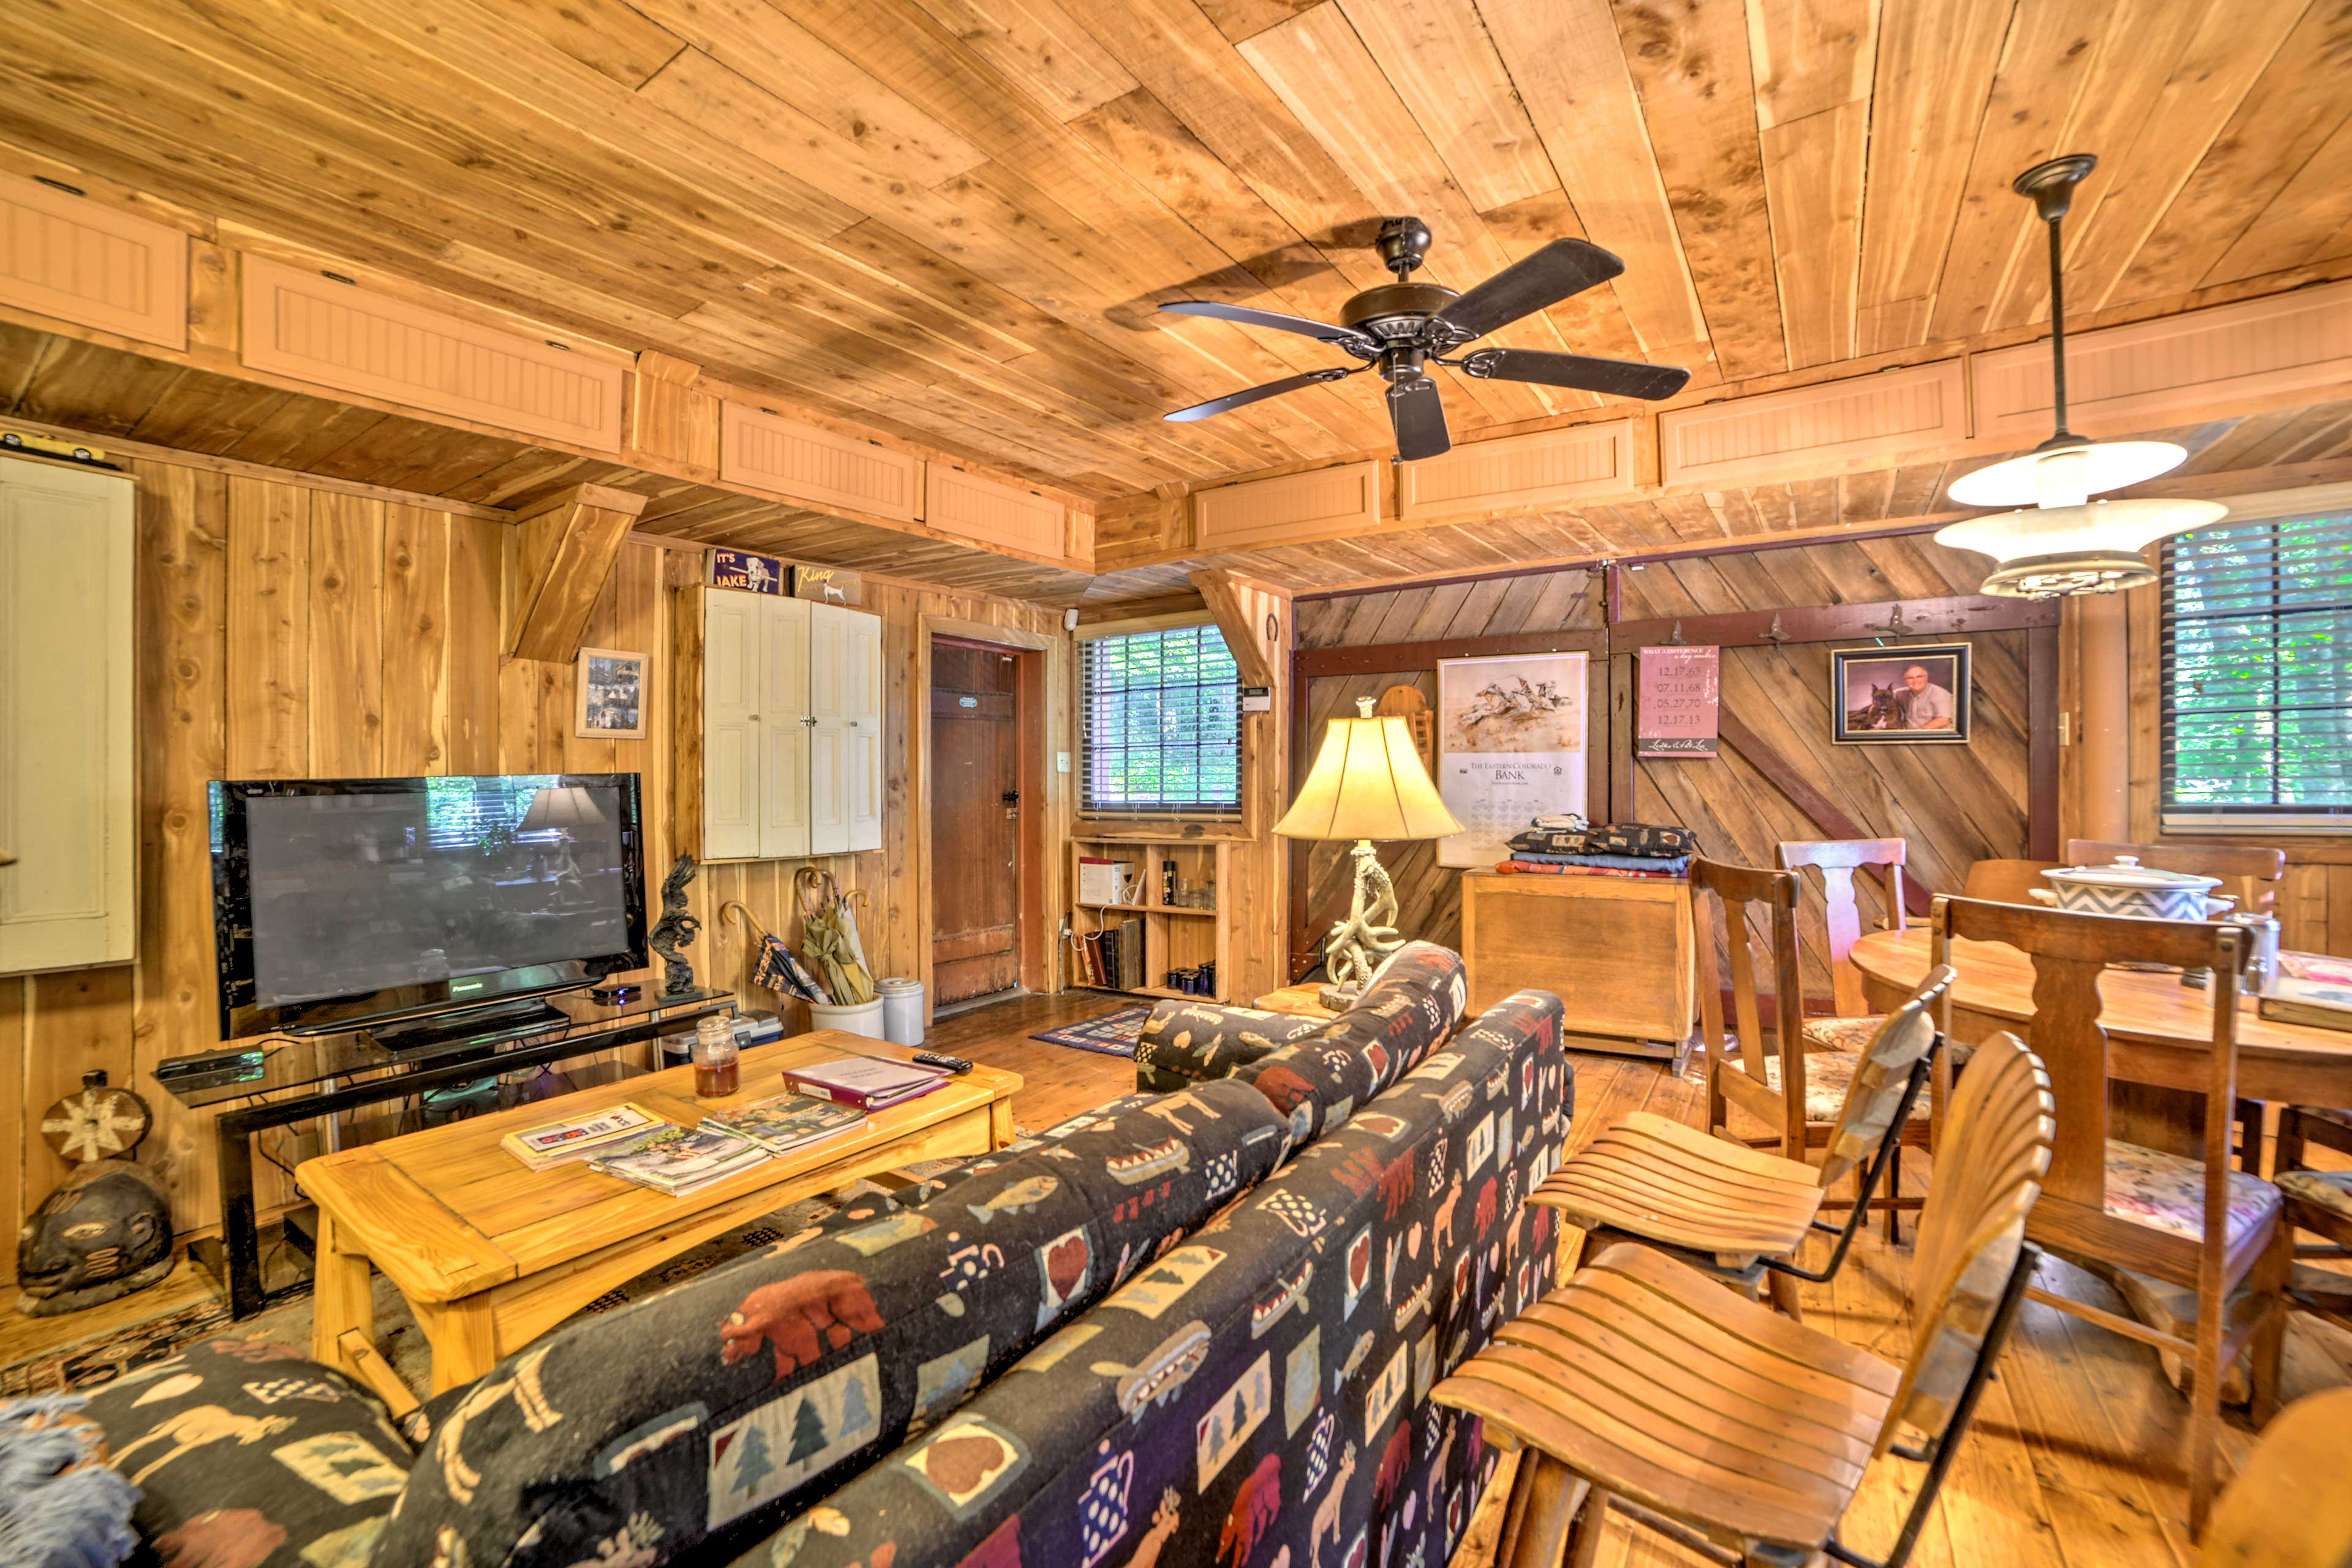 Step inside and unwind among the rustic decor and modern amenities.